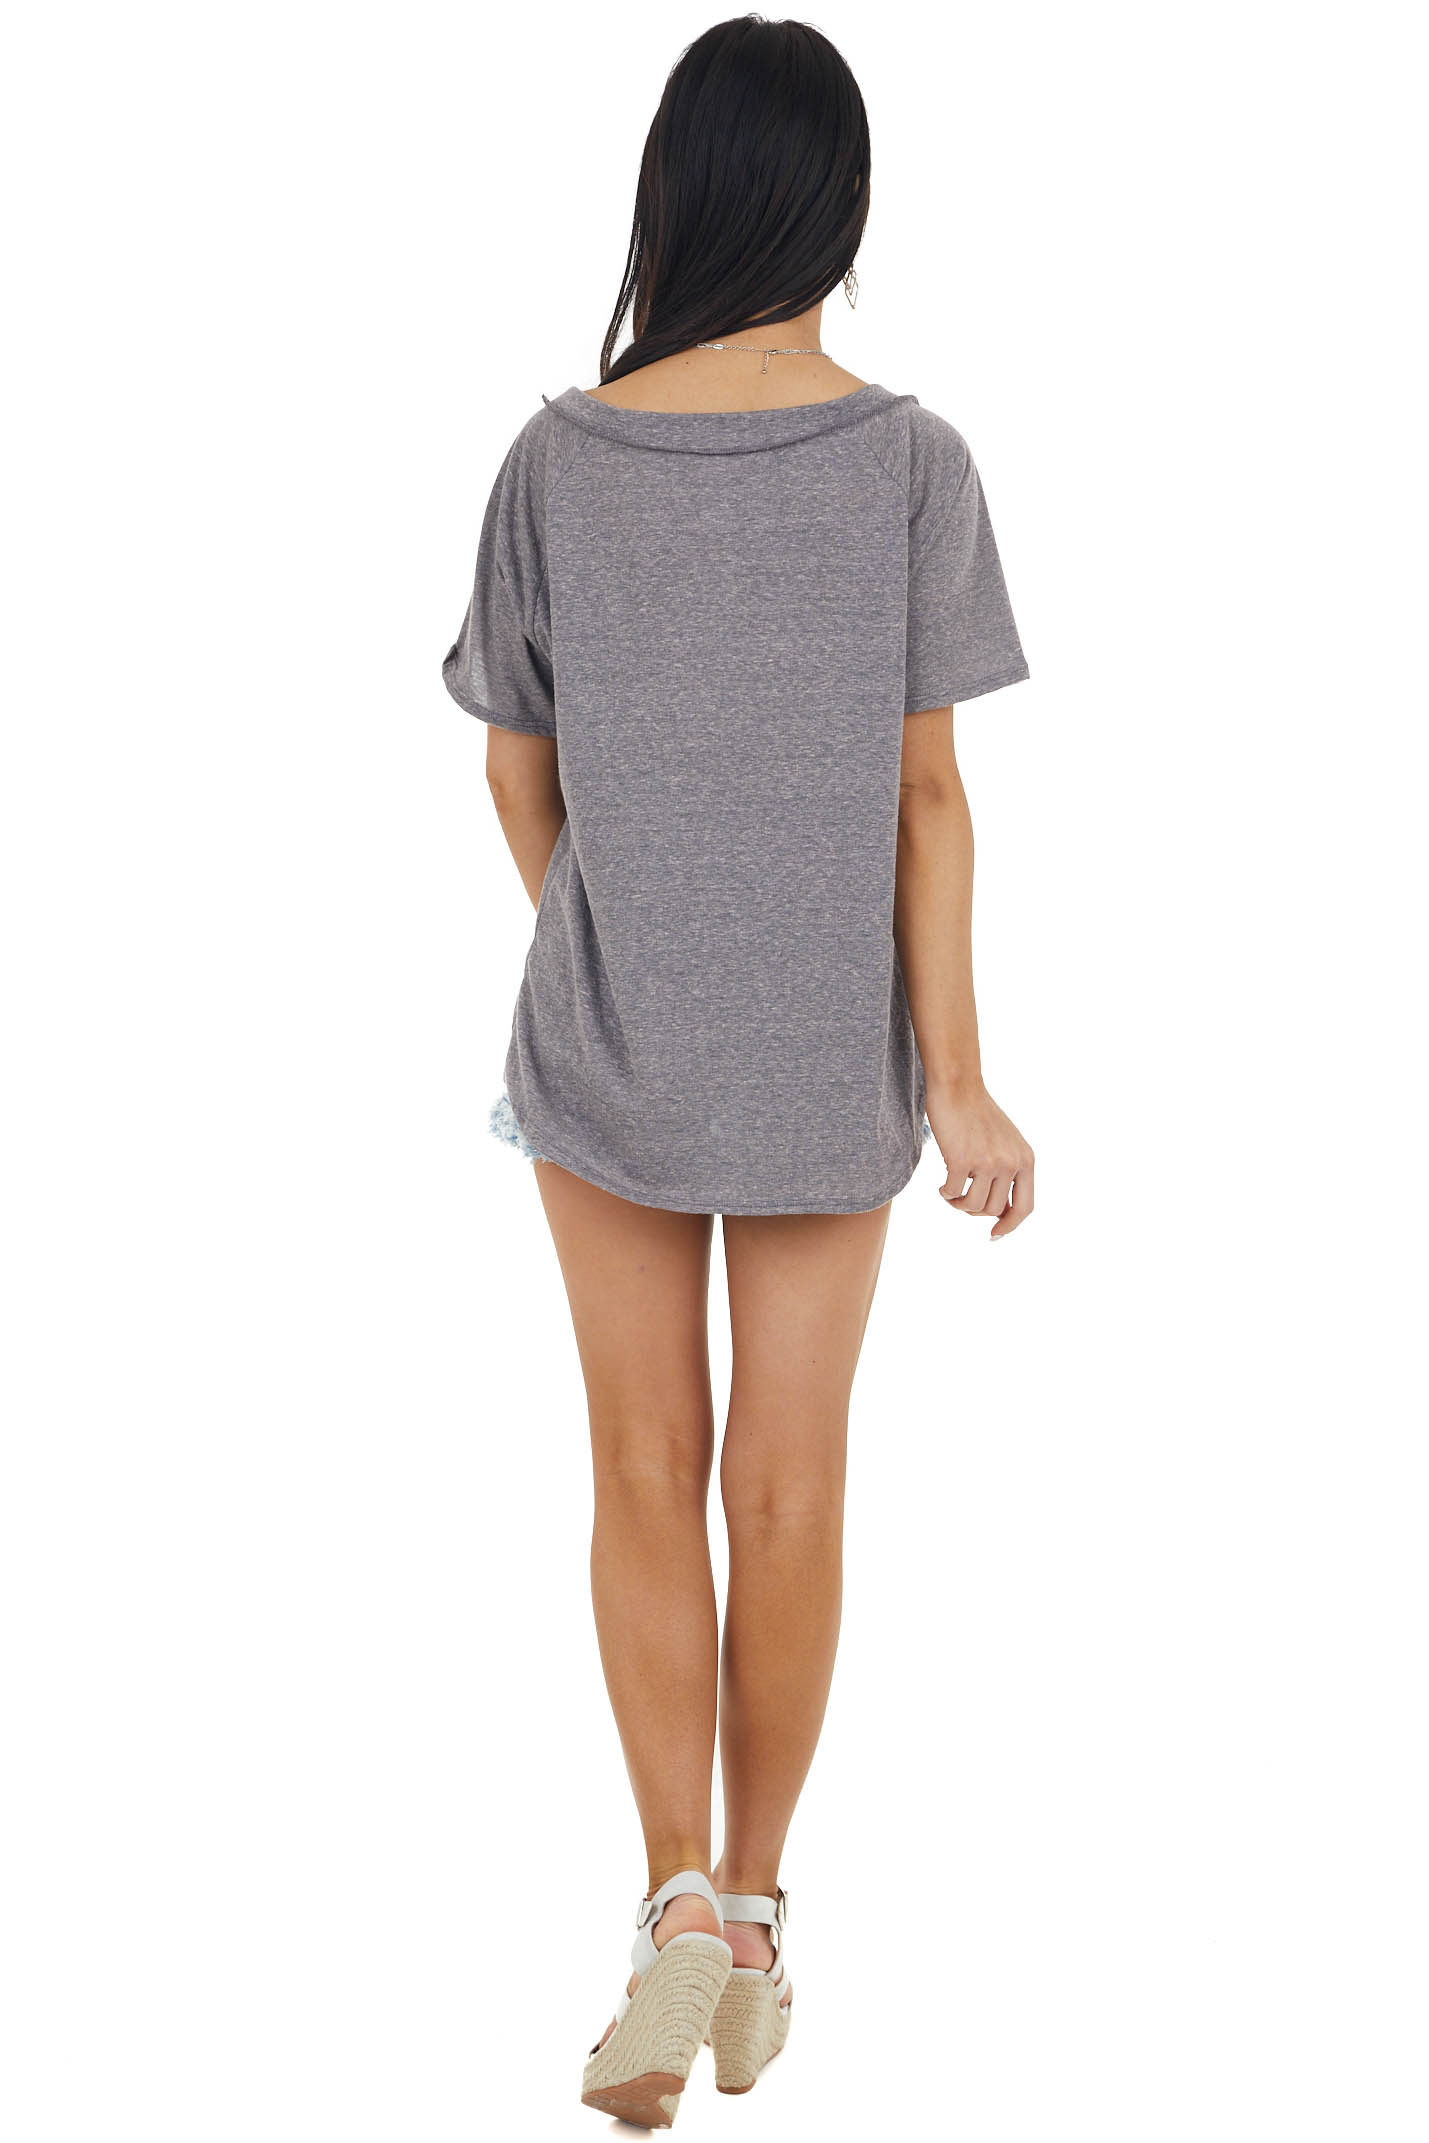 Stone Grey Two Tone Short Sleeve Knit Top with Raw Details